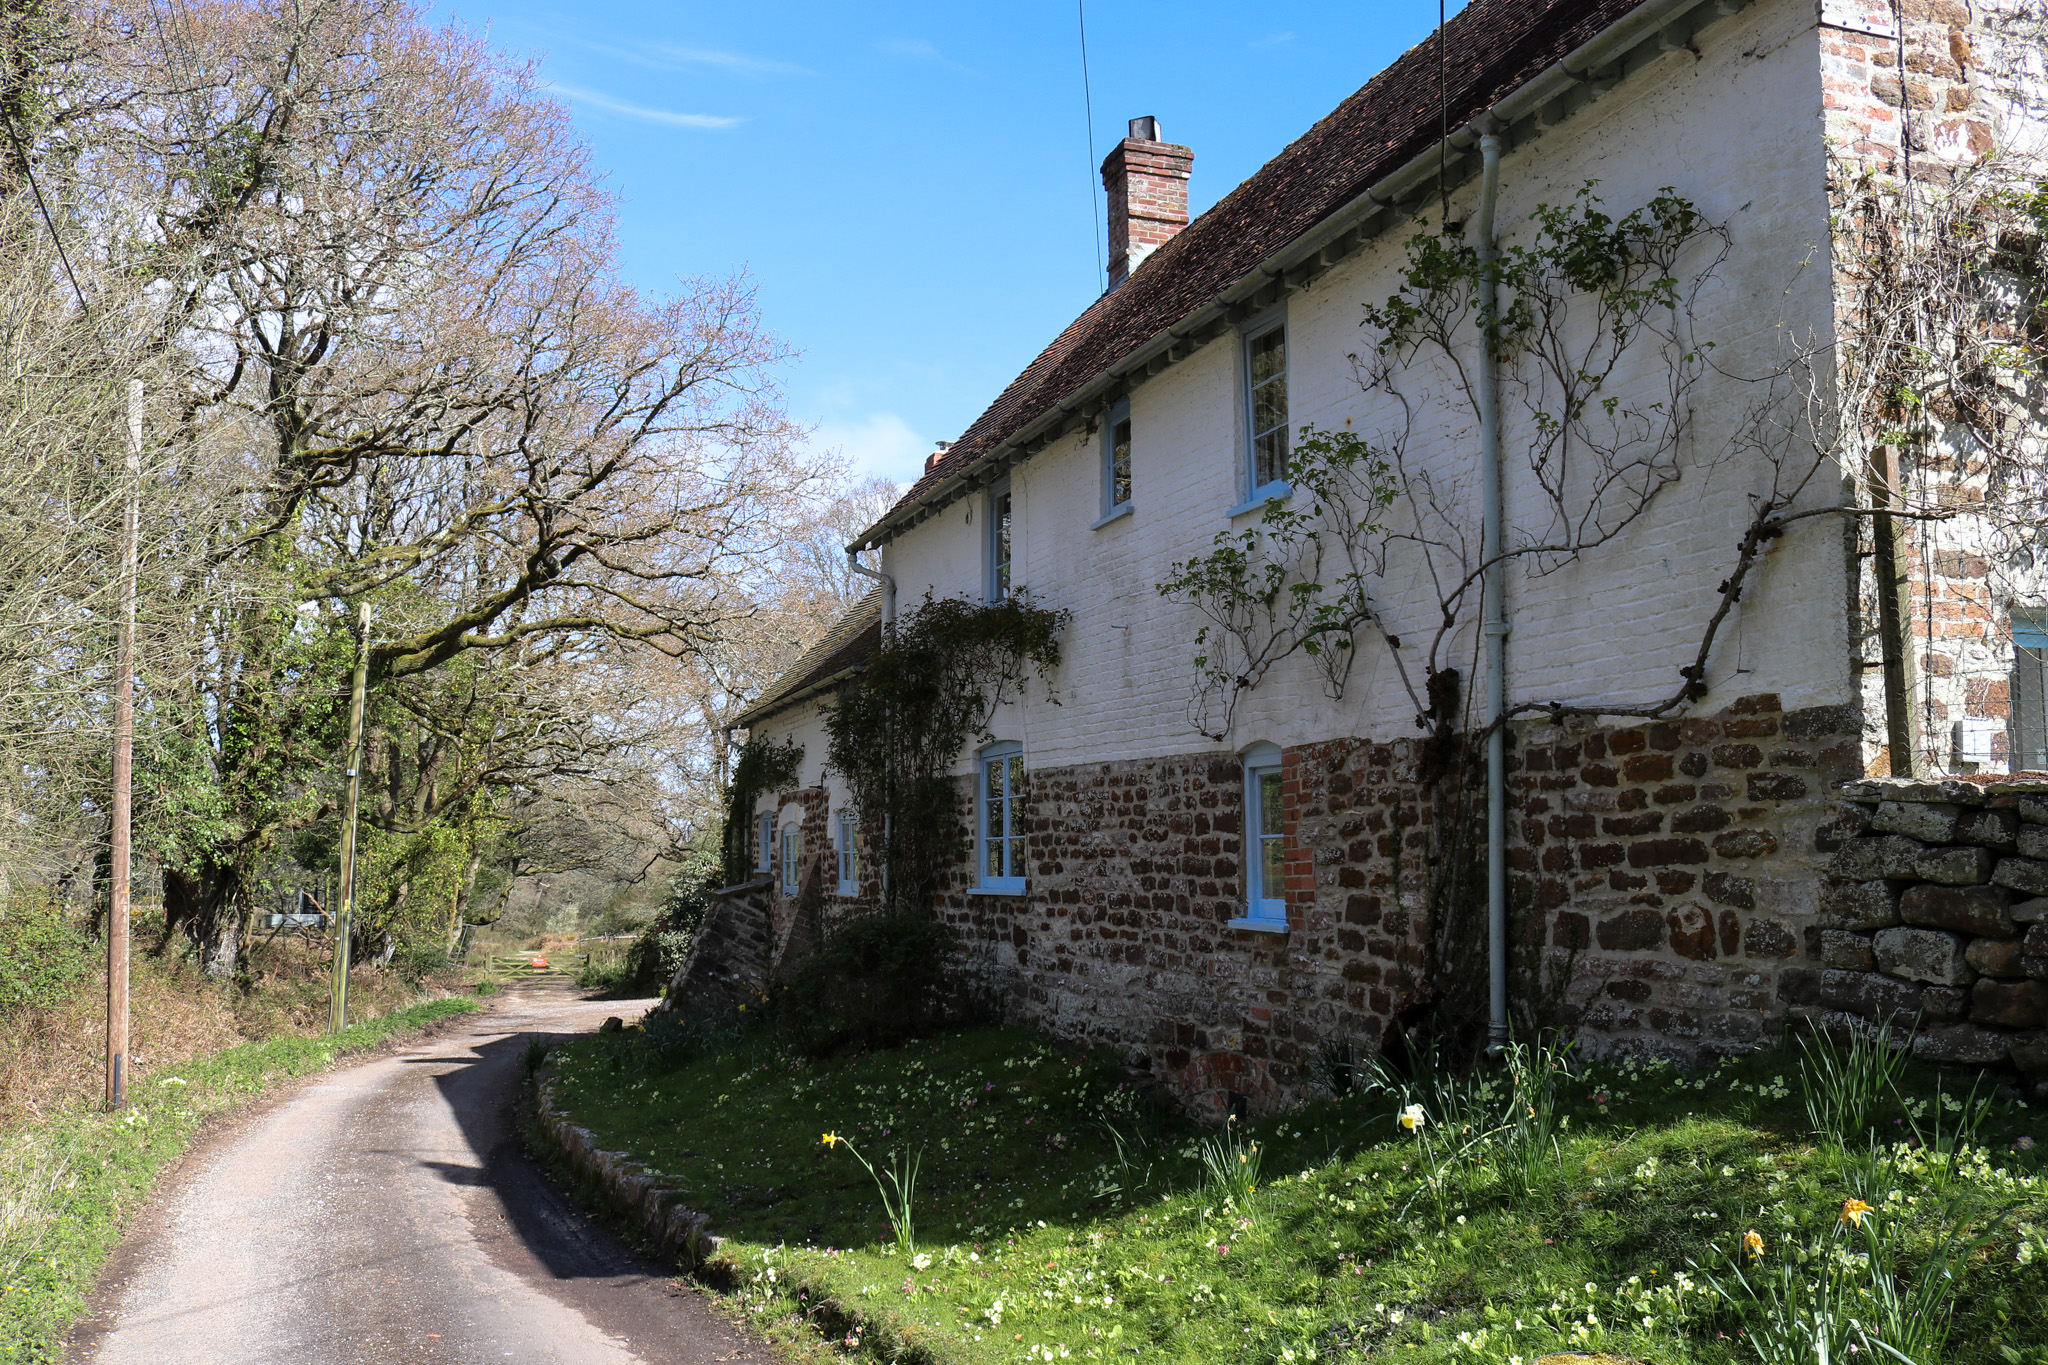 House toward the end of the main road in Arne village